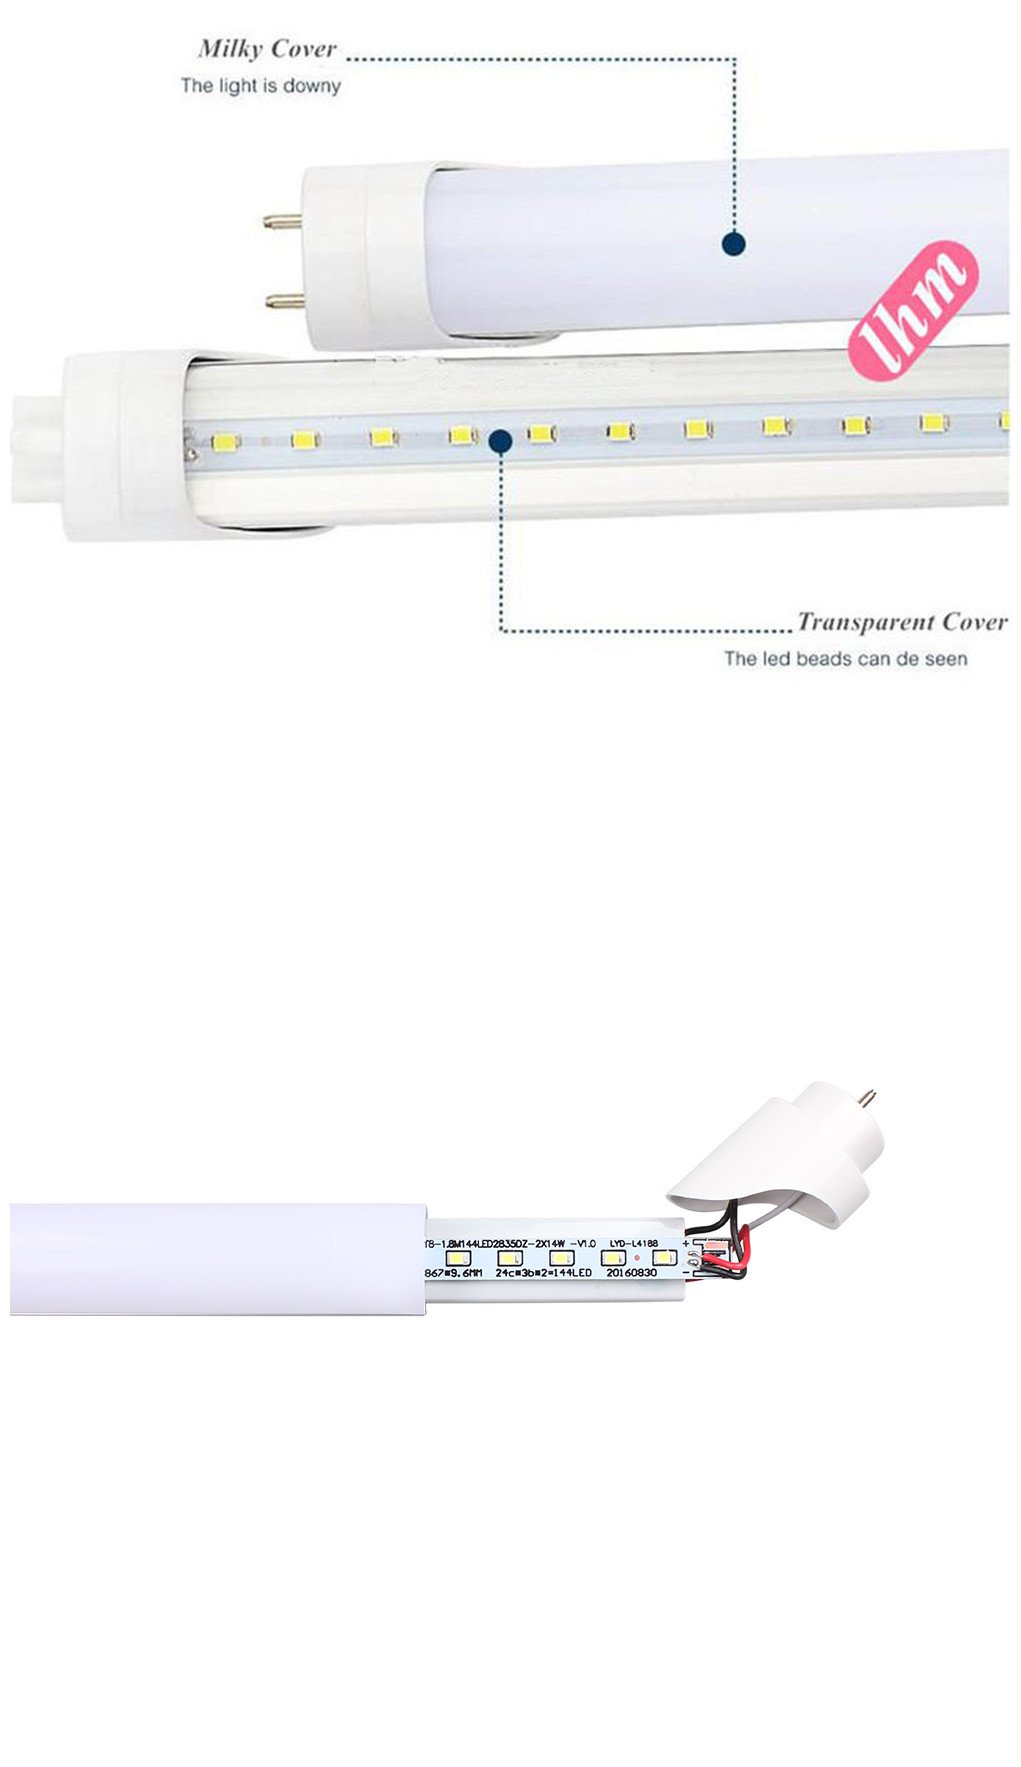 Easy-Installing & Eco-Friendly T8 LED Tube Light - 2FT 24'' 10W (18W Equivalent), Double-End Powered, Milky Cover, Works from 85-265VAC Fluorescent Replacement Lamp (1, Cool White 6000K-6500K) by Aurora Australis (Image #4)